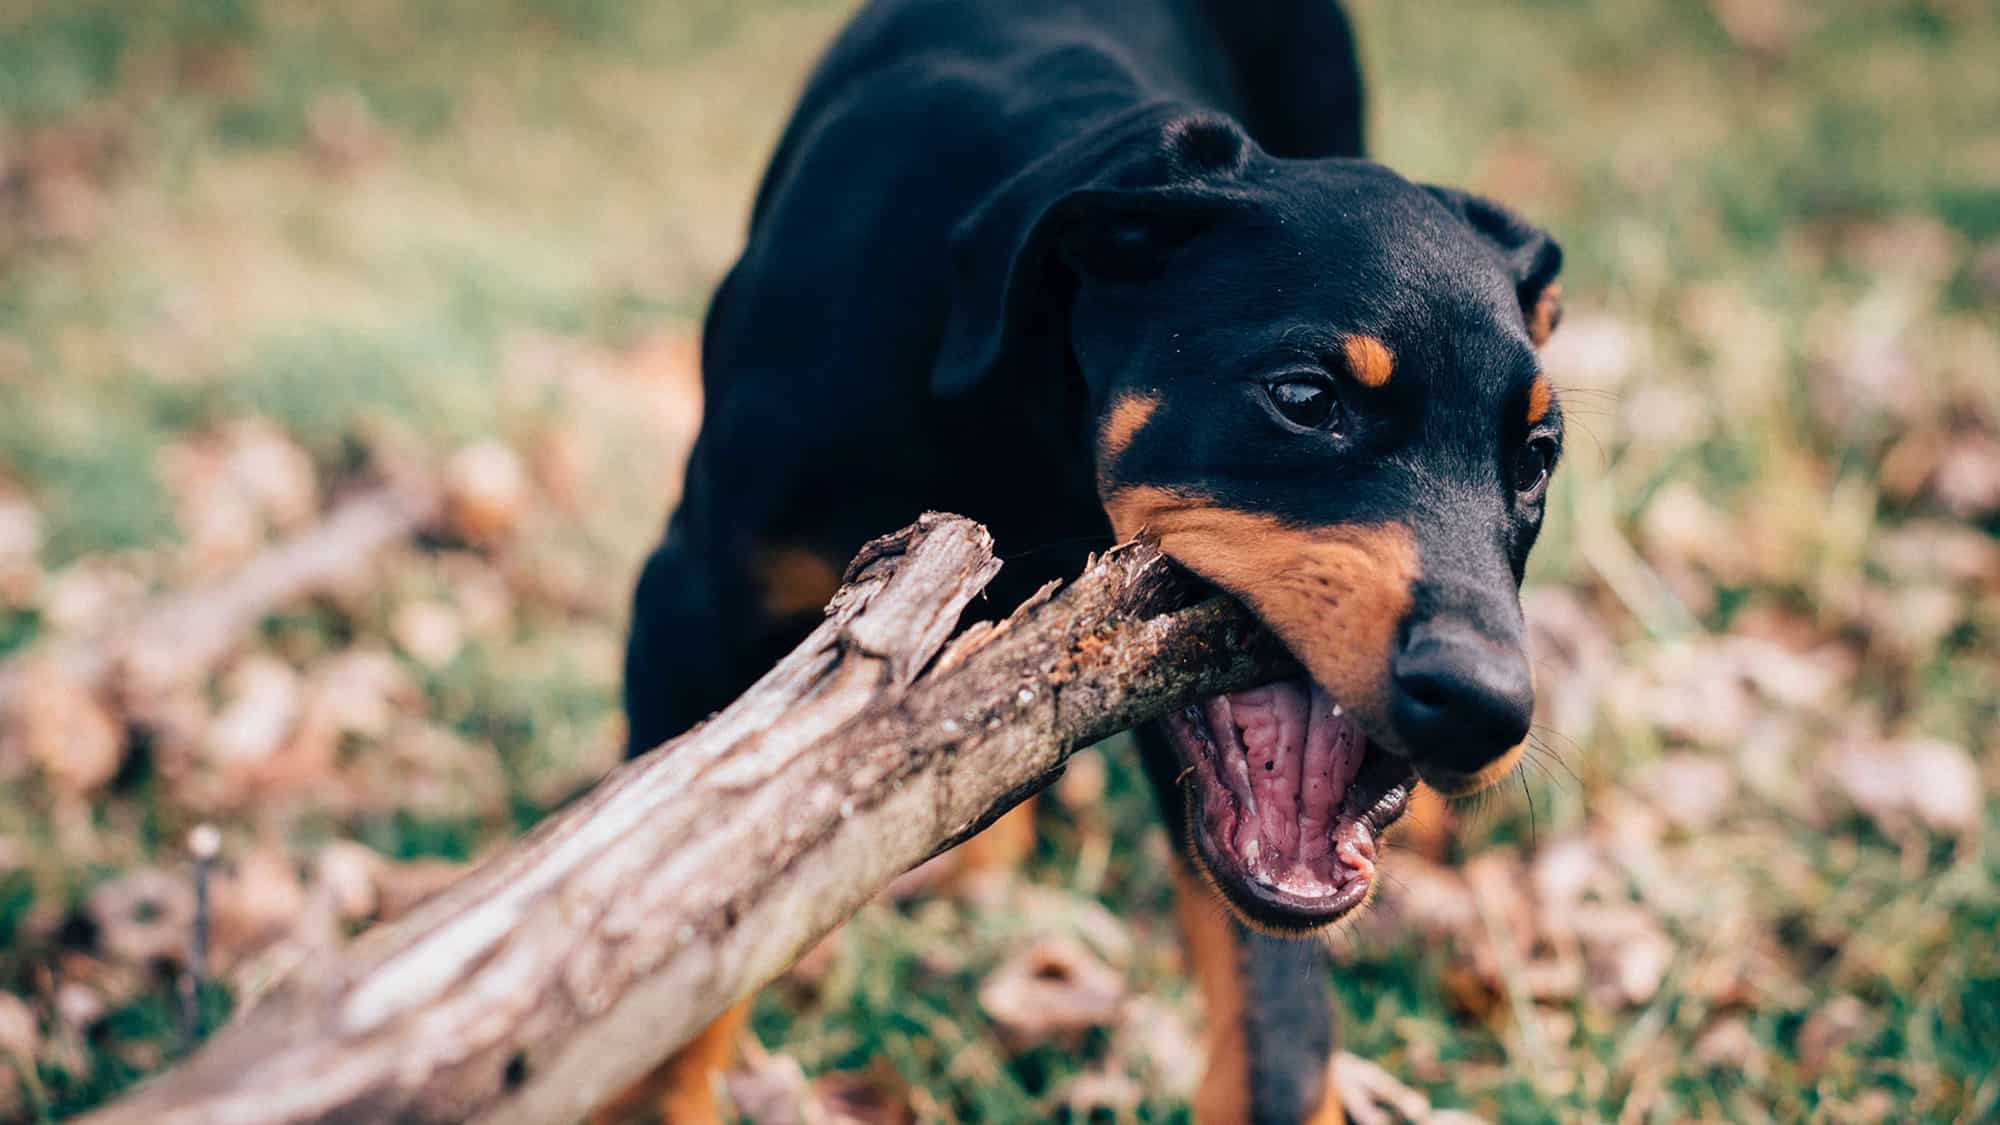 9. Rottweilers